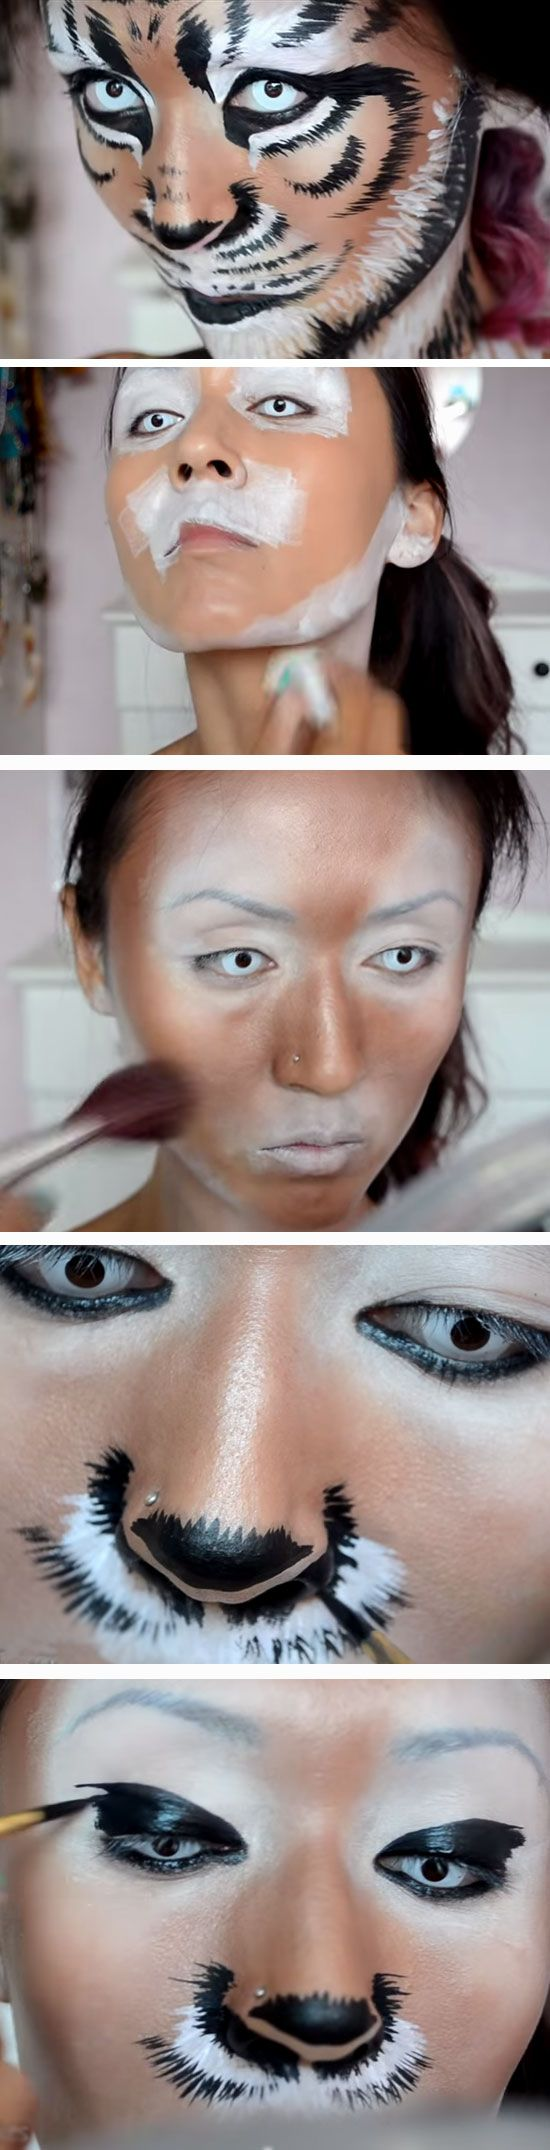 Halloween Tiger | Click Pic for 26 DIY Halloween Makeup Ideas for Women | DIY Halloween Dress Up Ideas for Adults